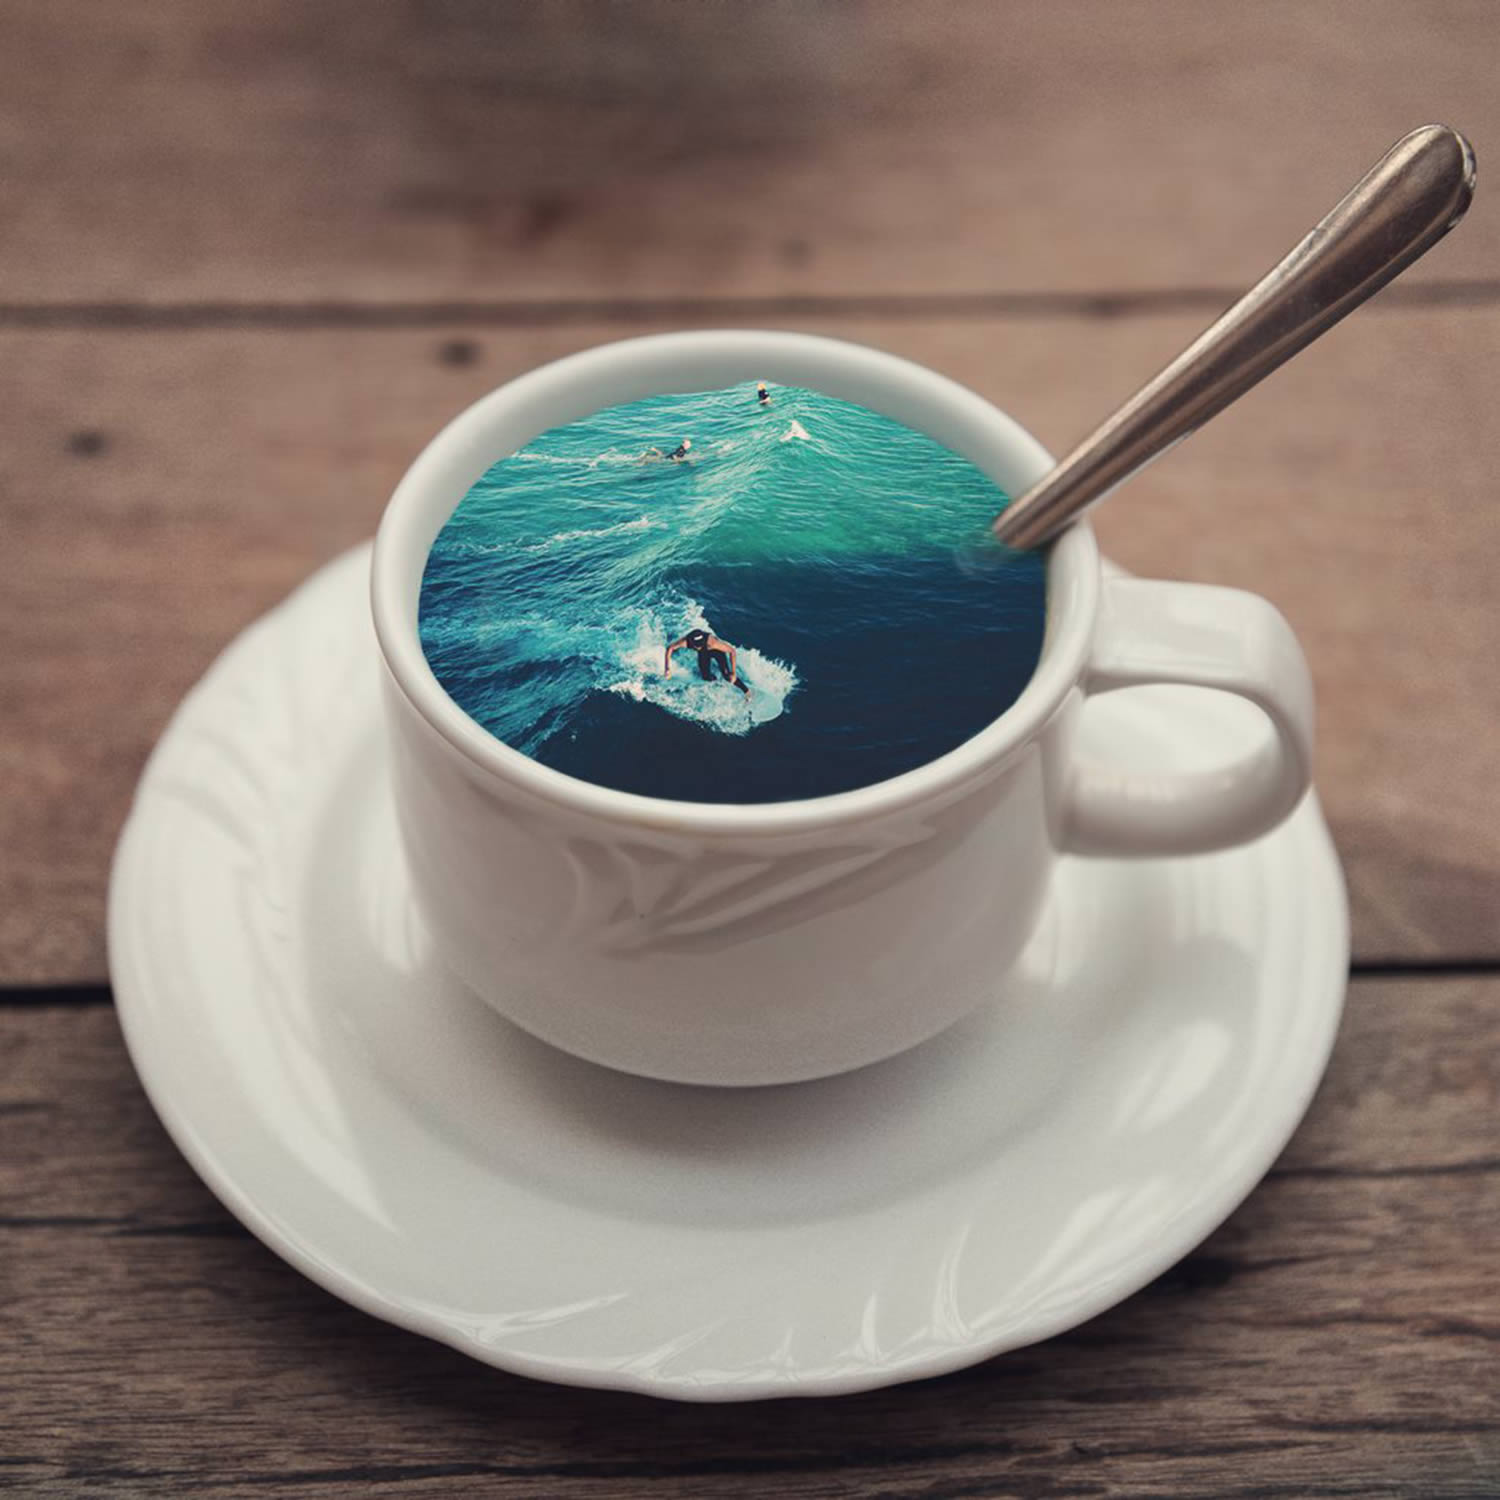 man surfing a wave in a cup